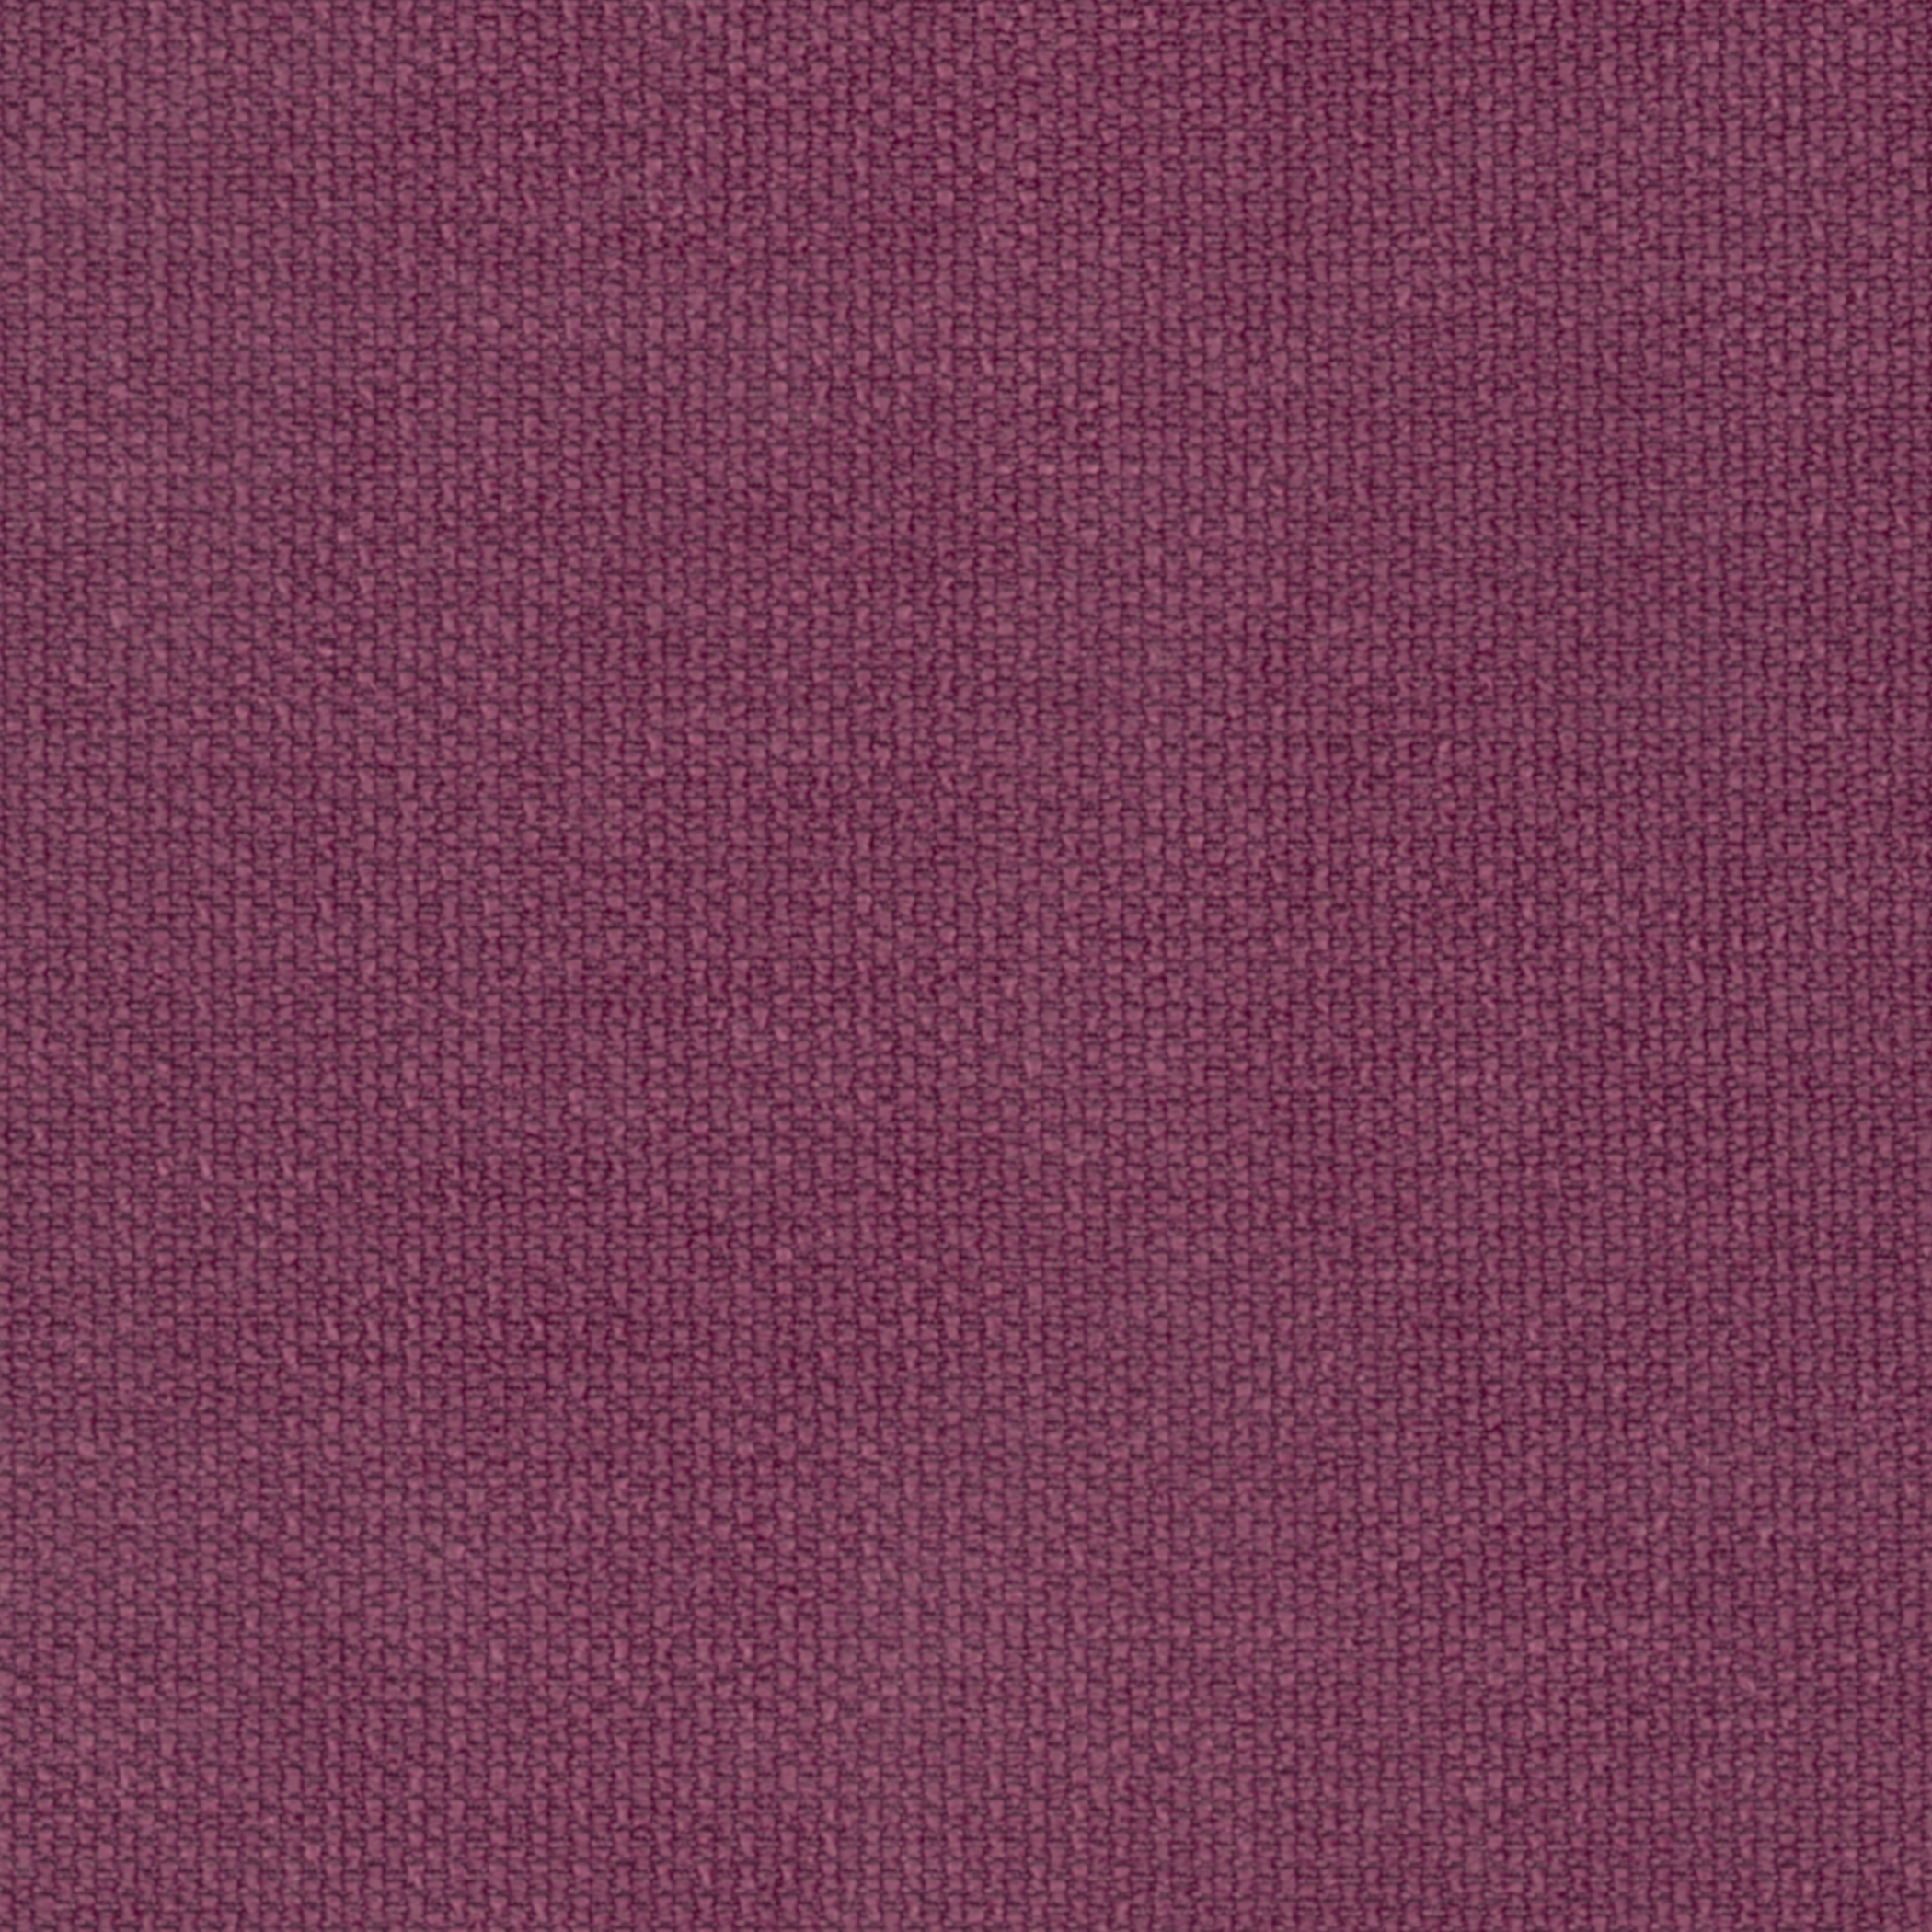 Eclectic Currant Purple And Mauve Muted Woven Upholstery